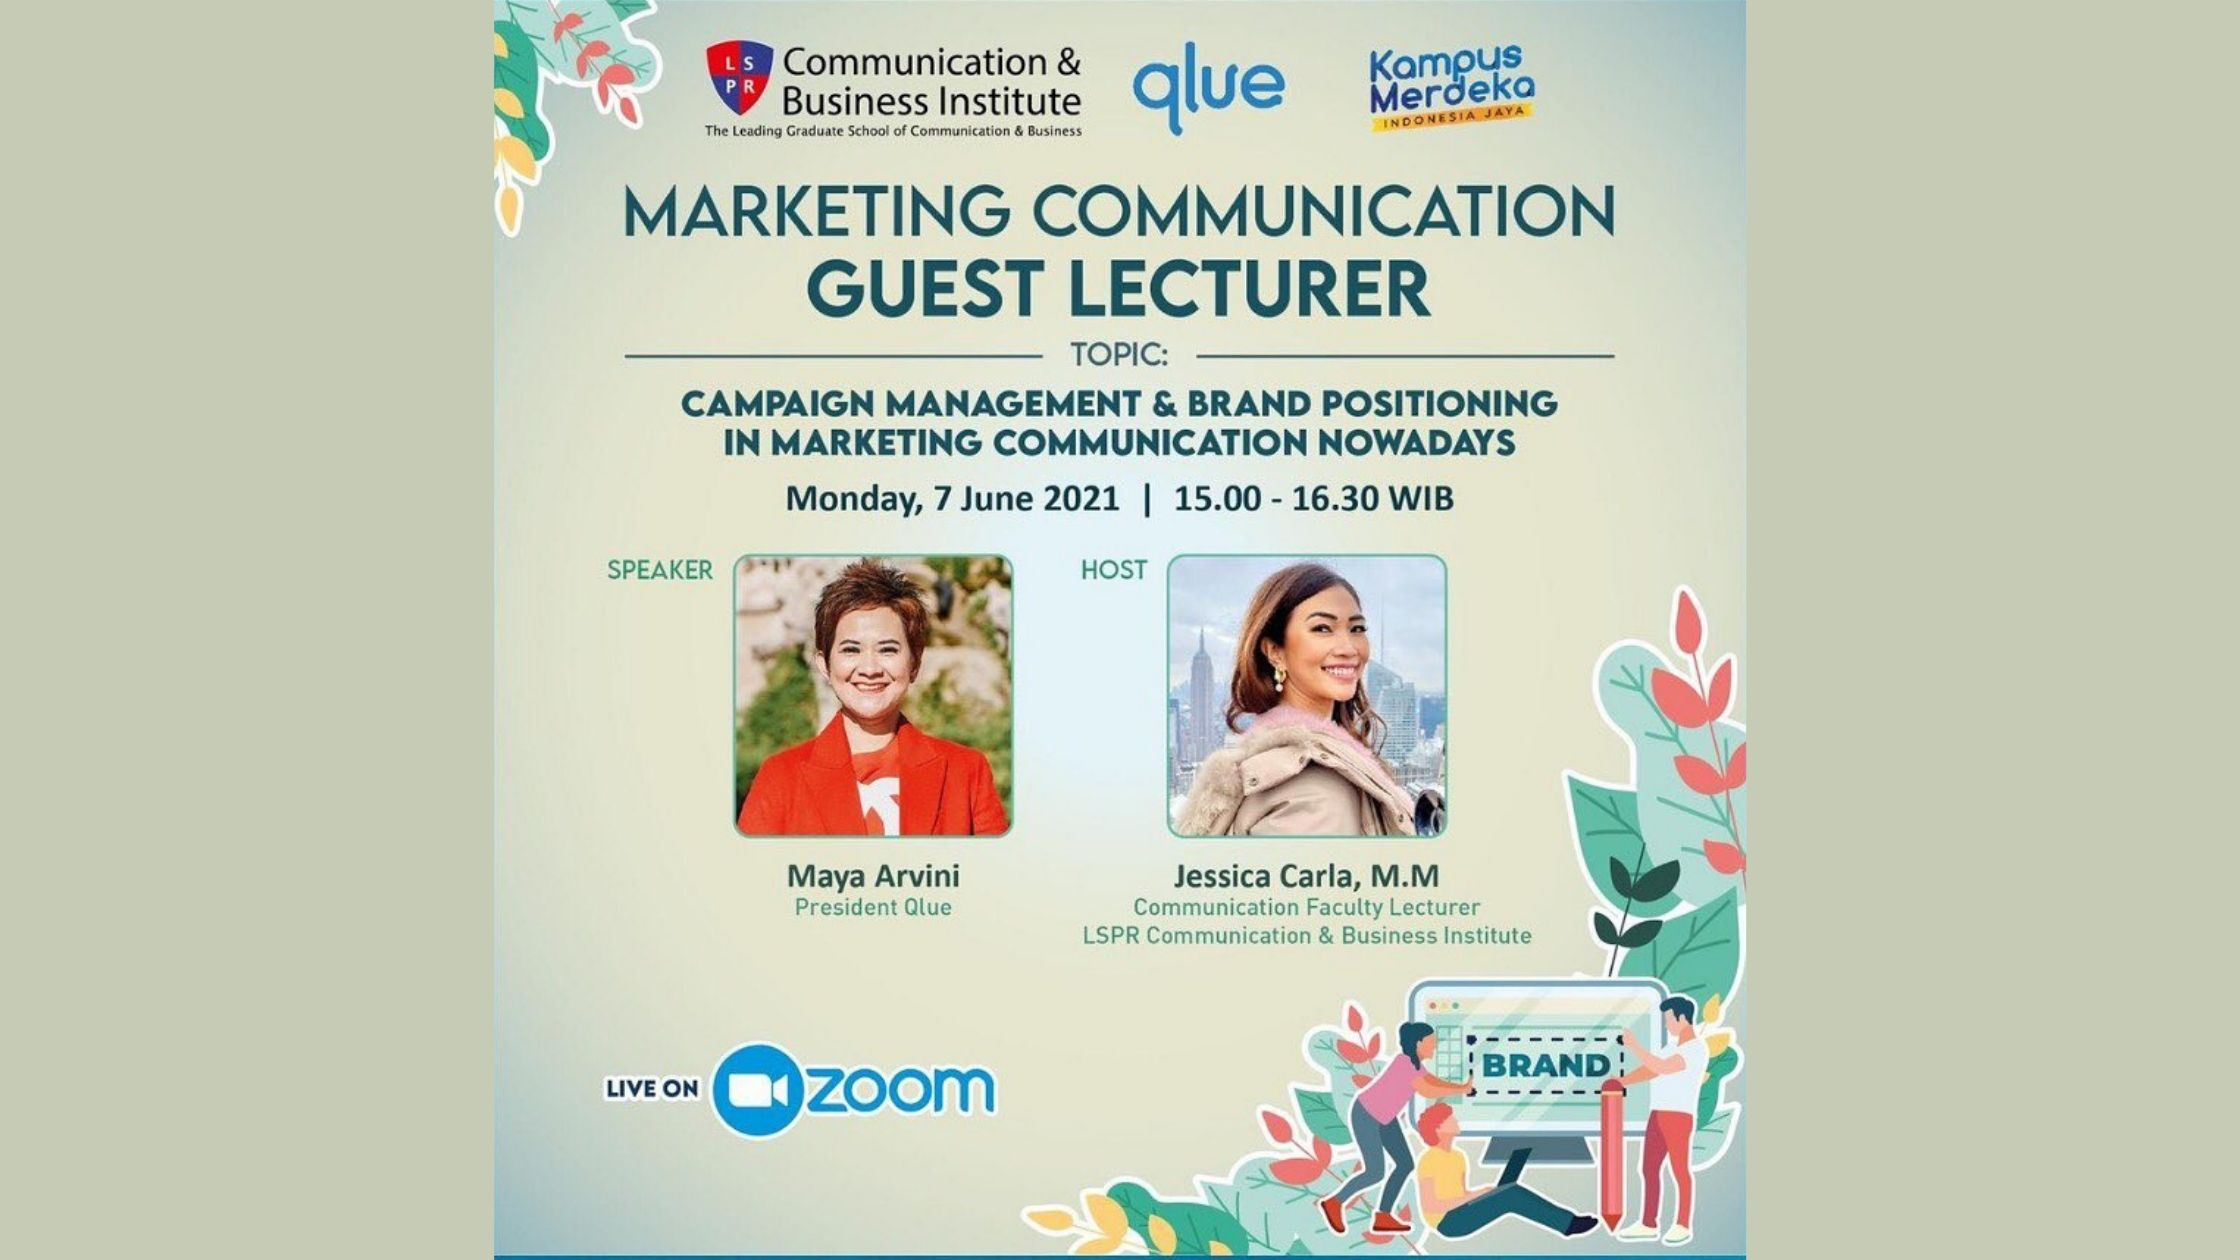 [UPDATE] Guest Lecturer: Campaign Management & Brand Positioning in Marketing Communication Nowadays by Ms. Maya Arvini  (President Qlue)